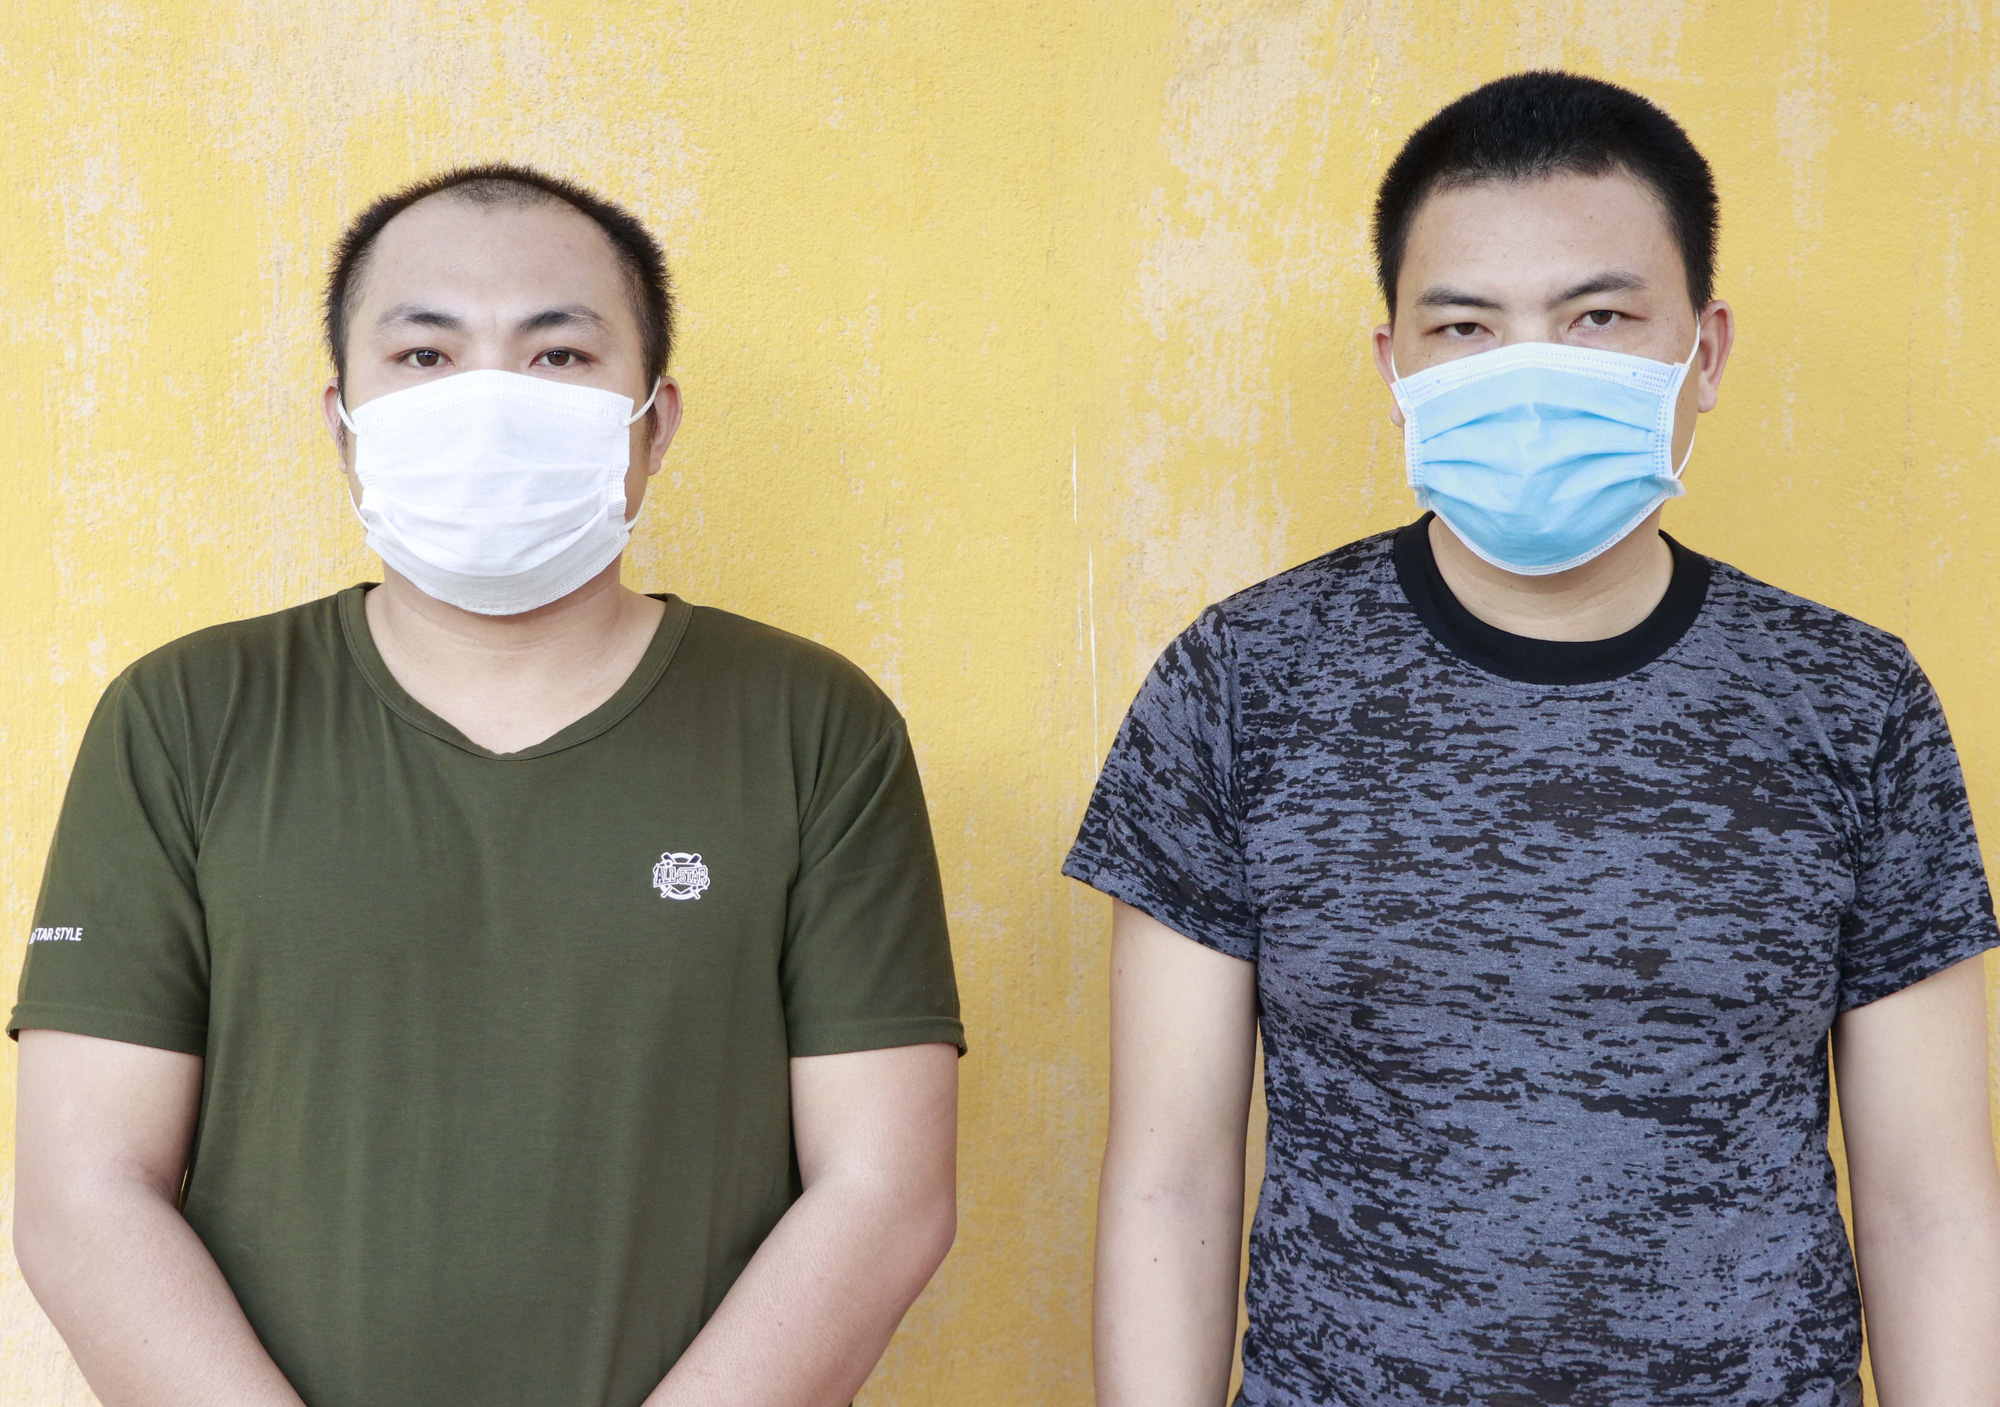 Vietnamese cabbies prosecuted for helping Chinese travel to Cambodia illegally